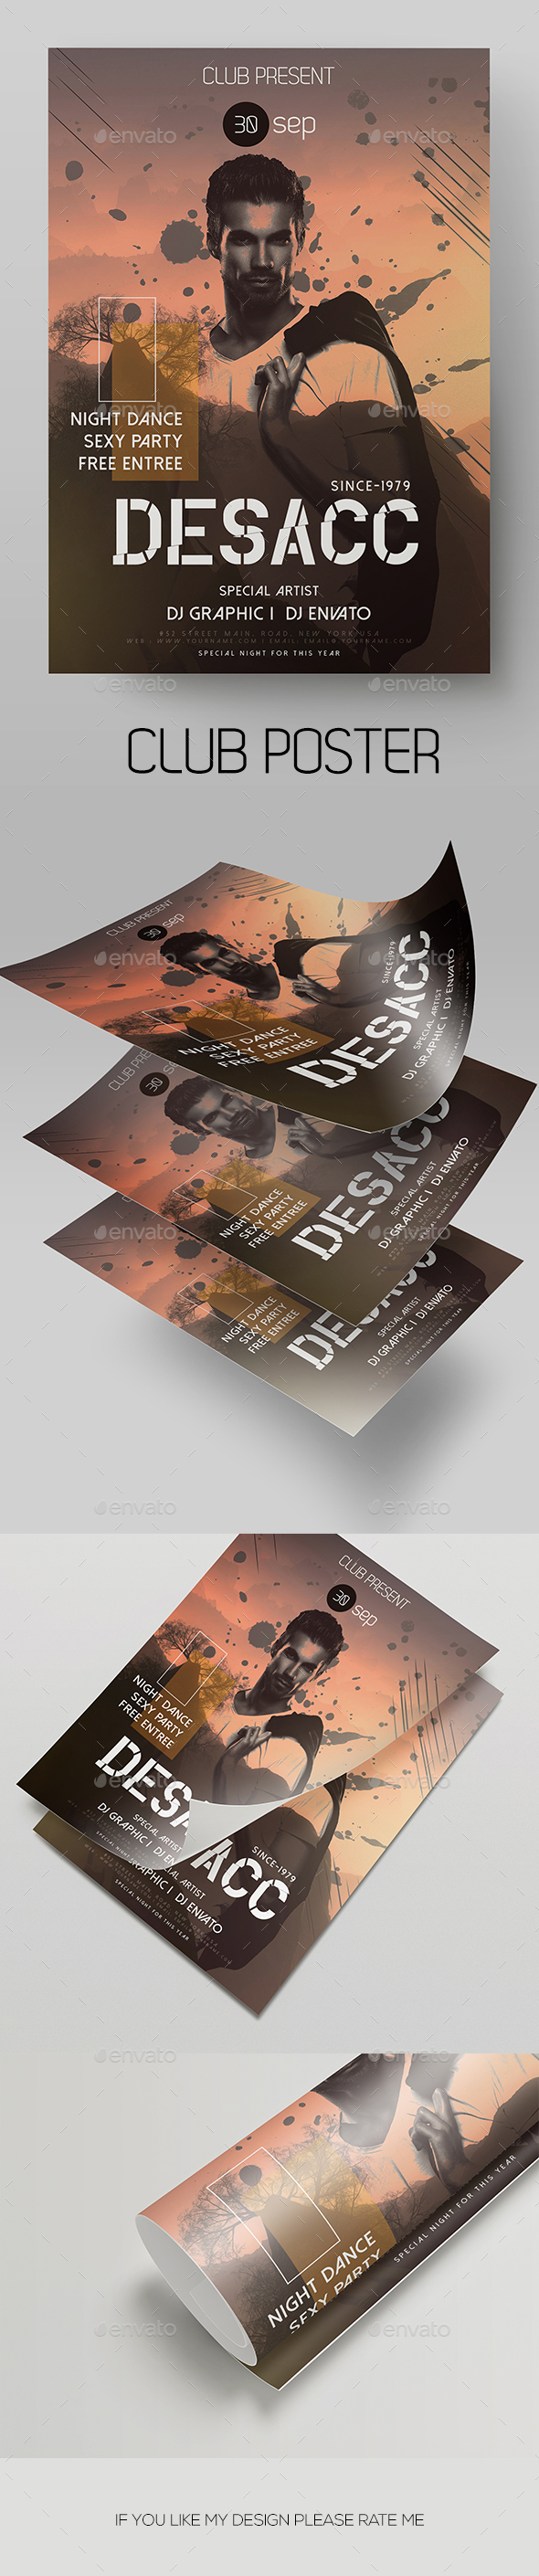 Guest DJ Flyer Template - Clubs & Parties Events